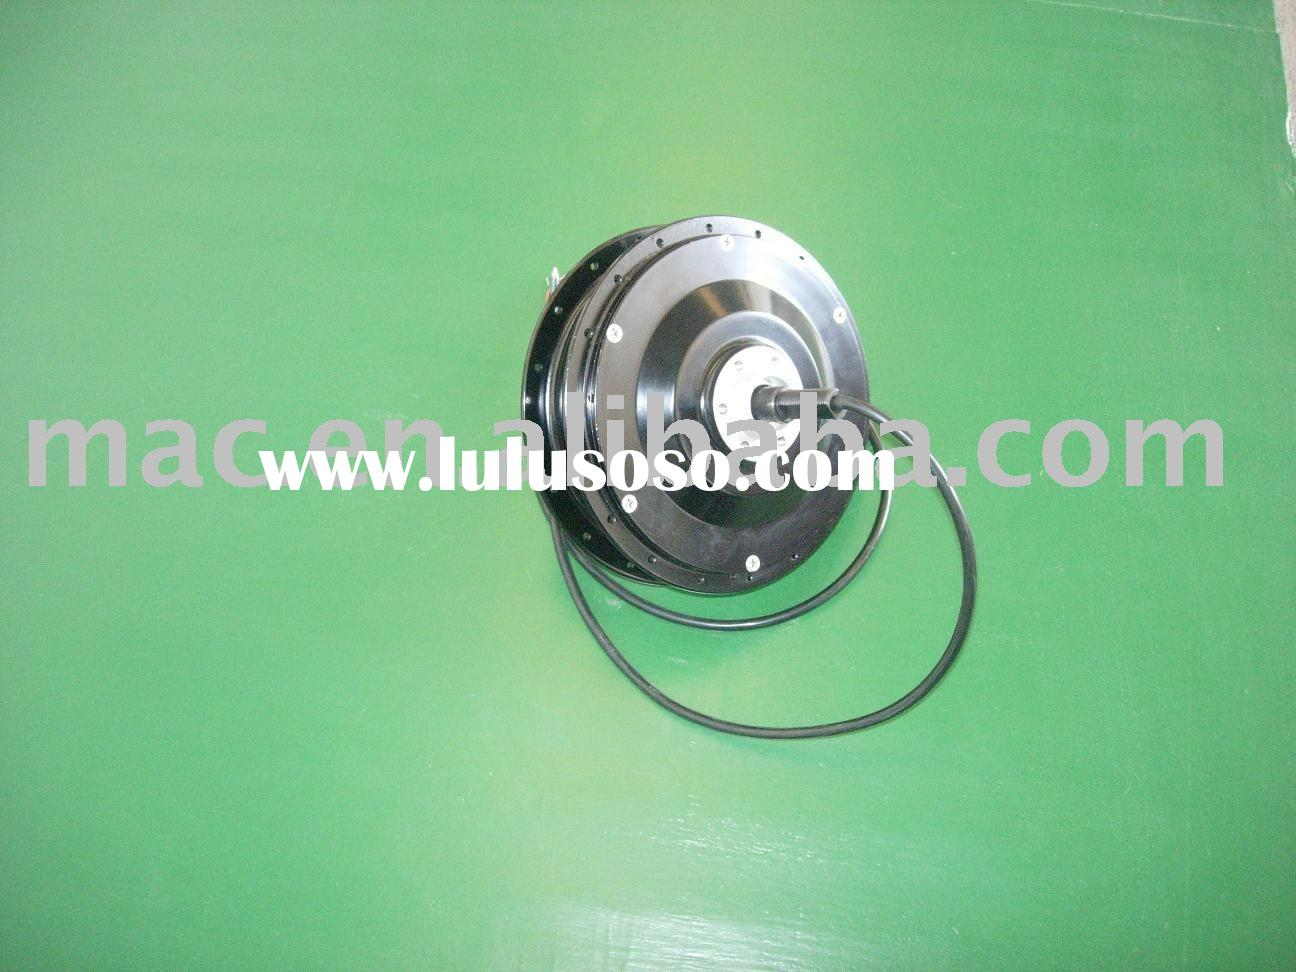 DC hub motor, Brushless DC Motor, bicycle conversion kit